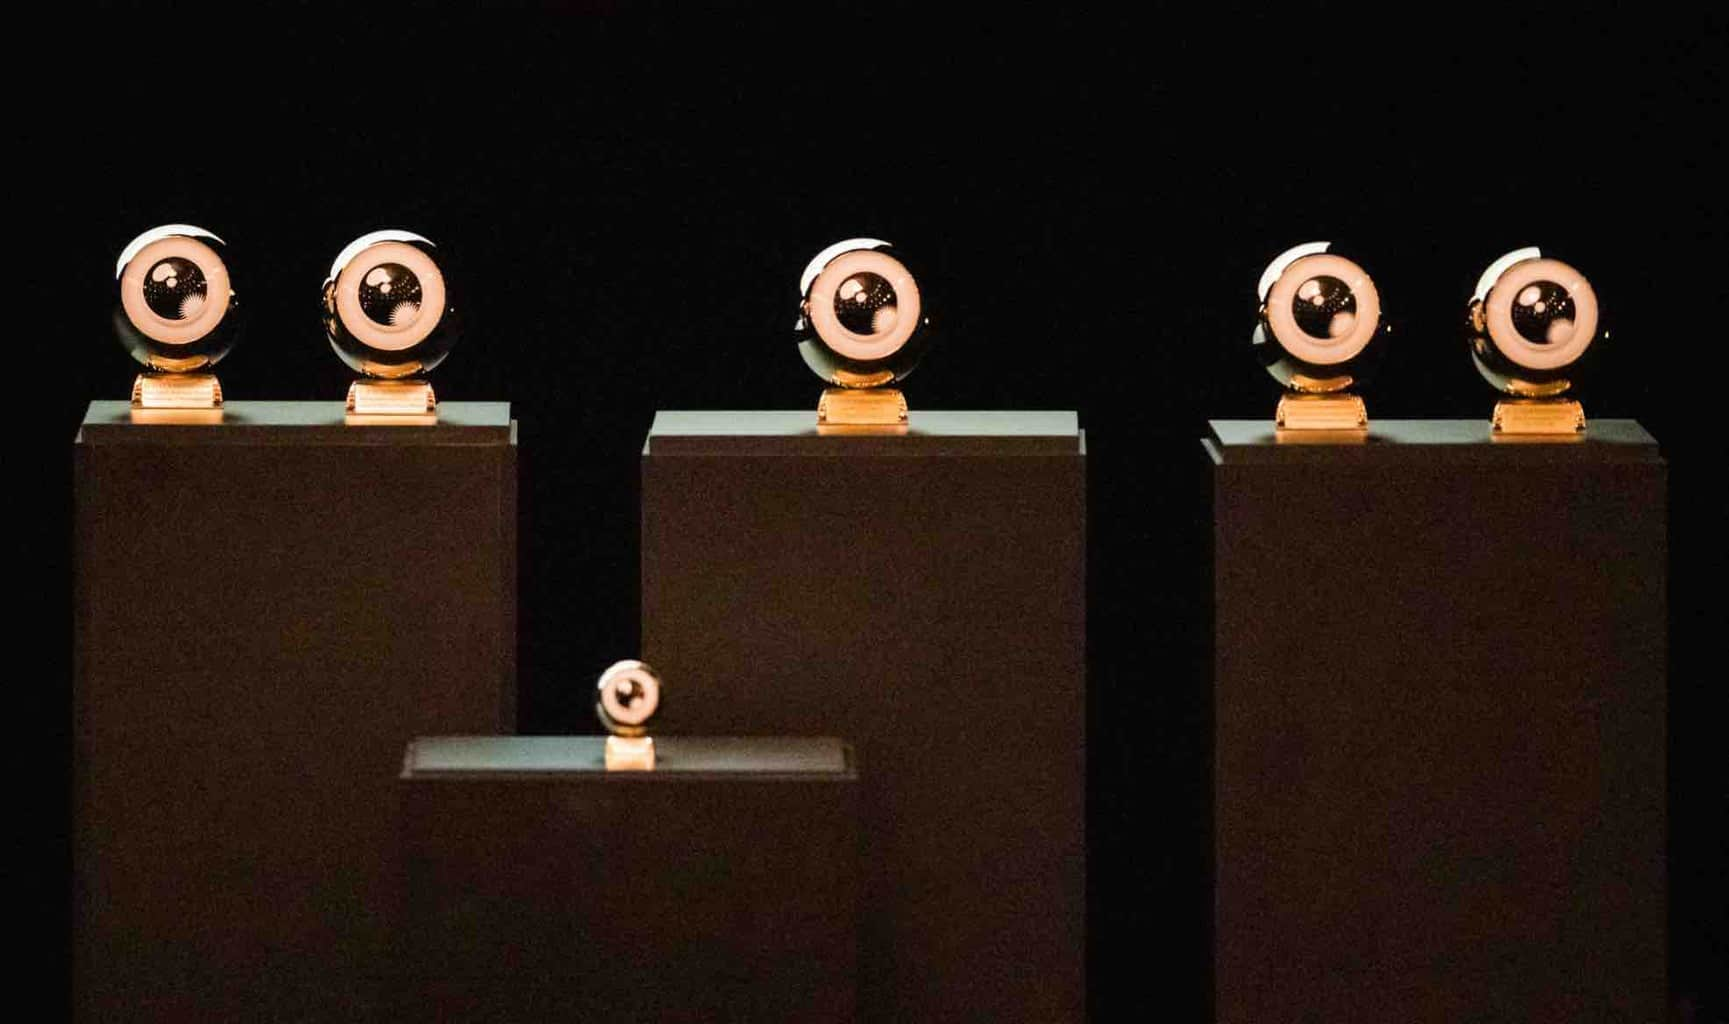 Golden Eye Awards for The Winners of Zurich Film Festival - ZFF 2019